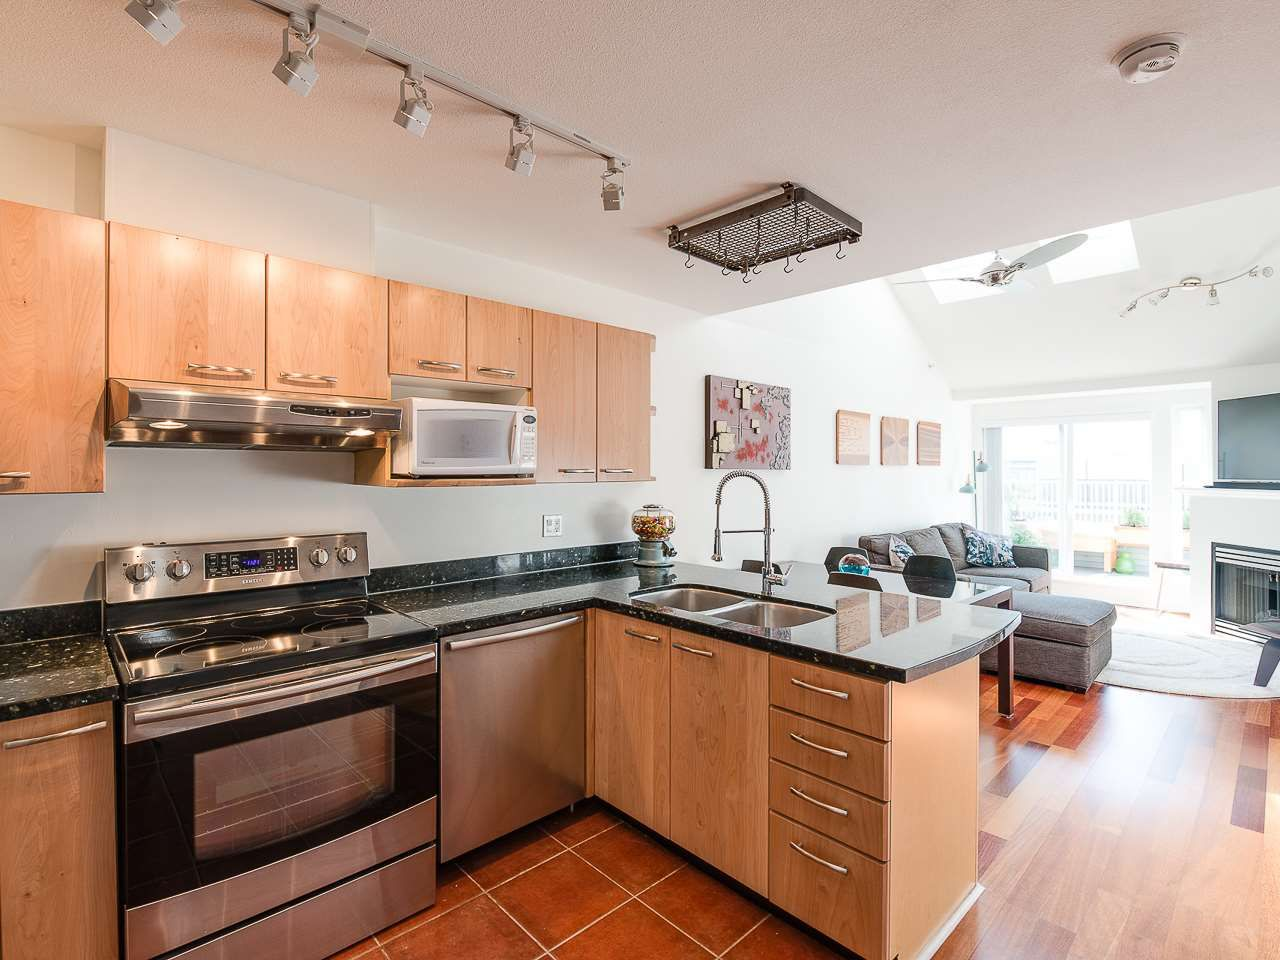 Main Photo: 404 3939 HASTINGS STREET in Burnaby: Vancouver Heights Condo for sale (Burnaby North)  : MLS®# R2261825